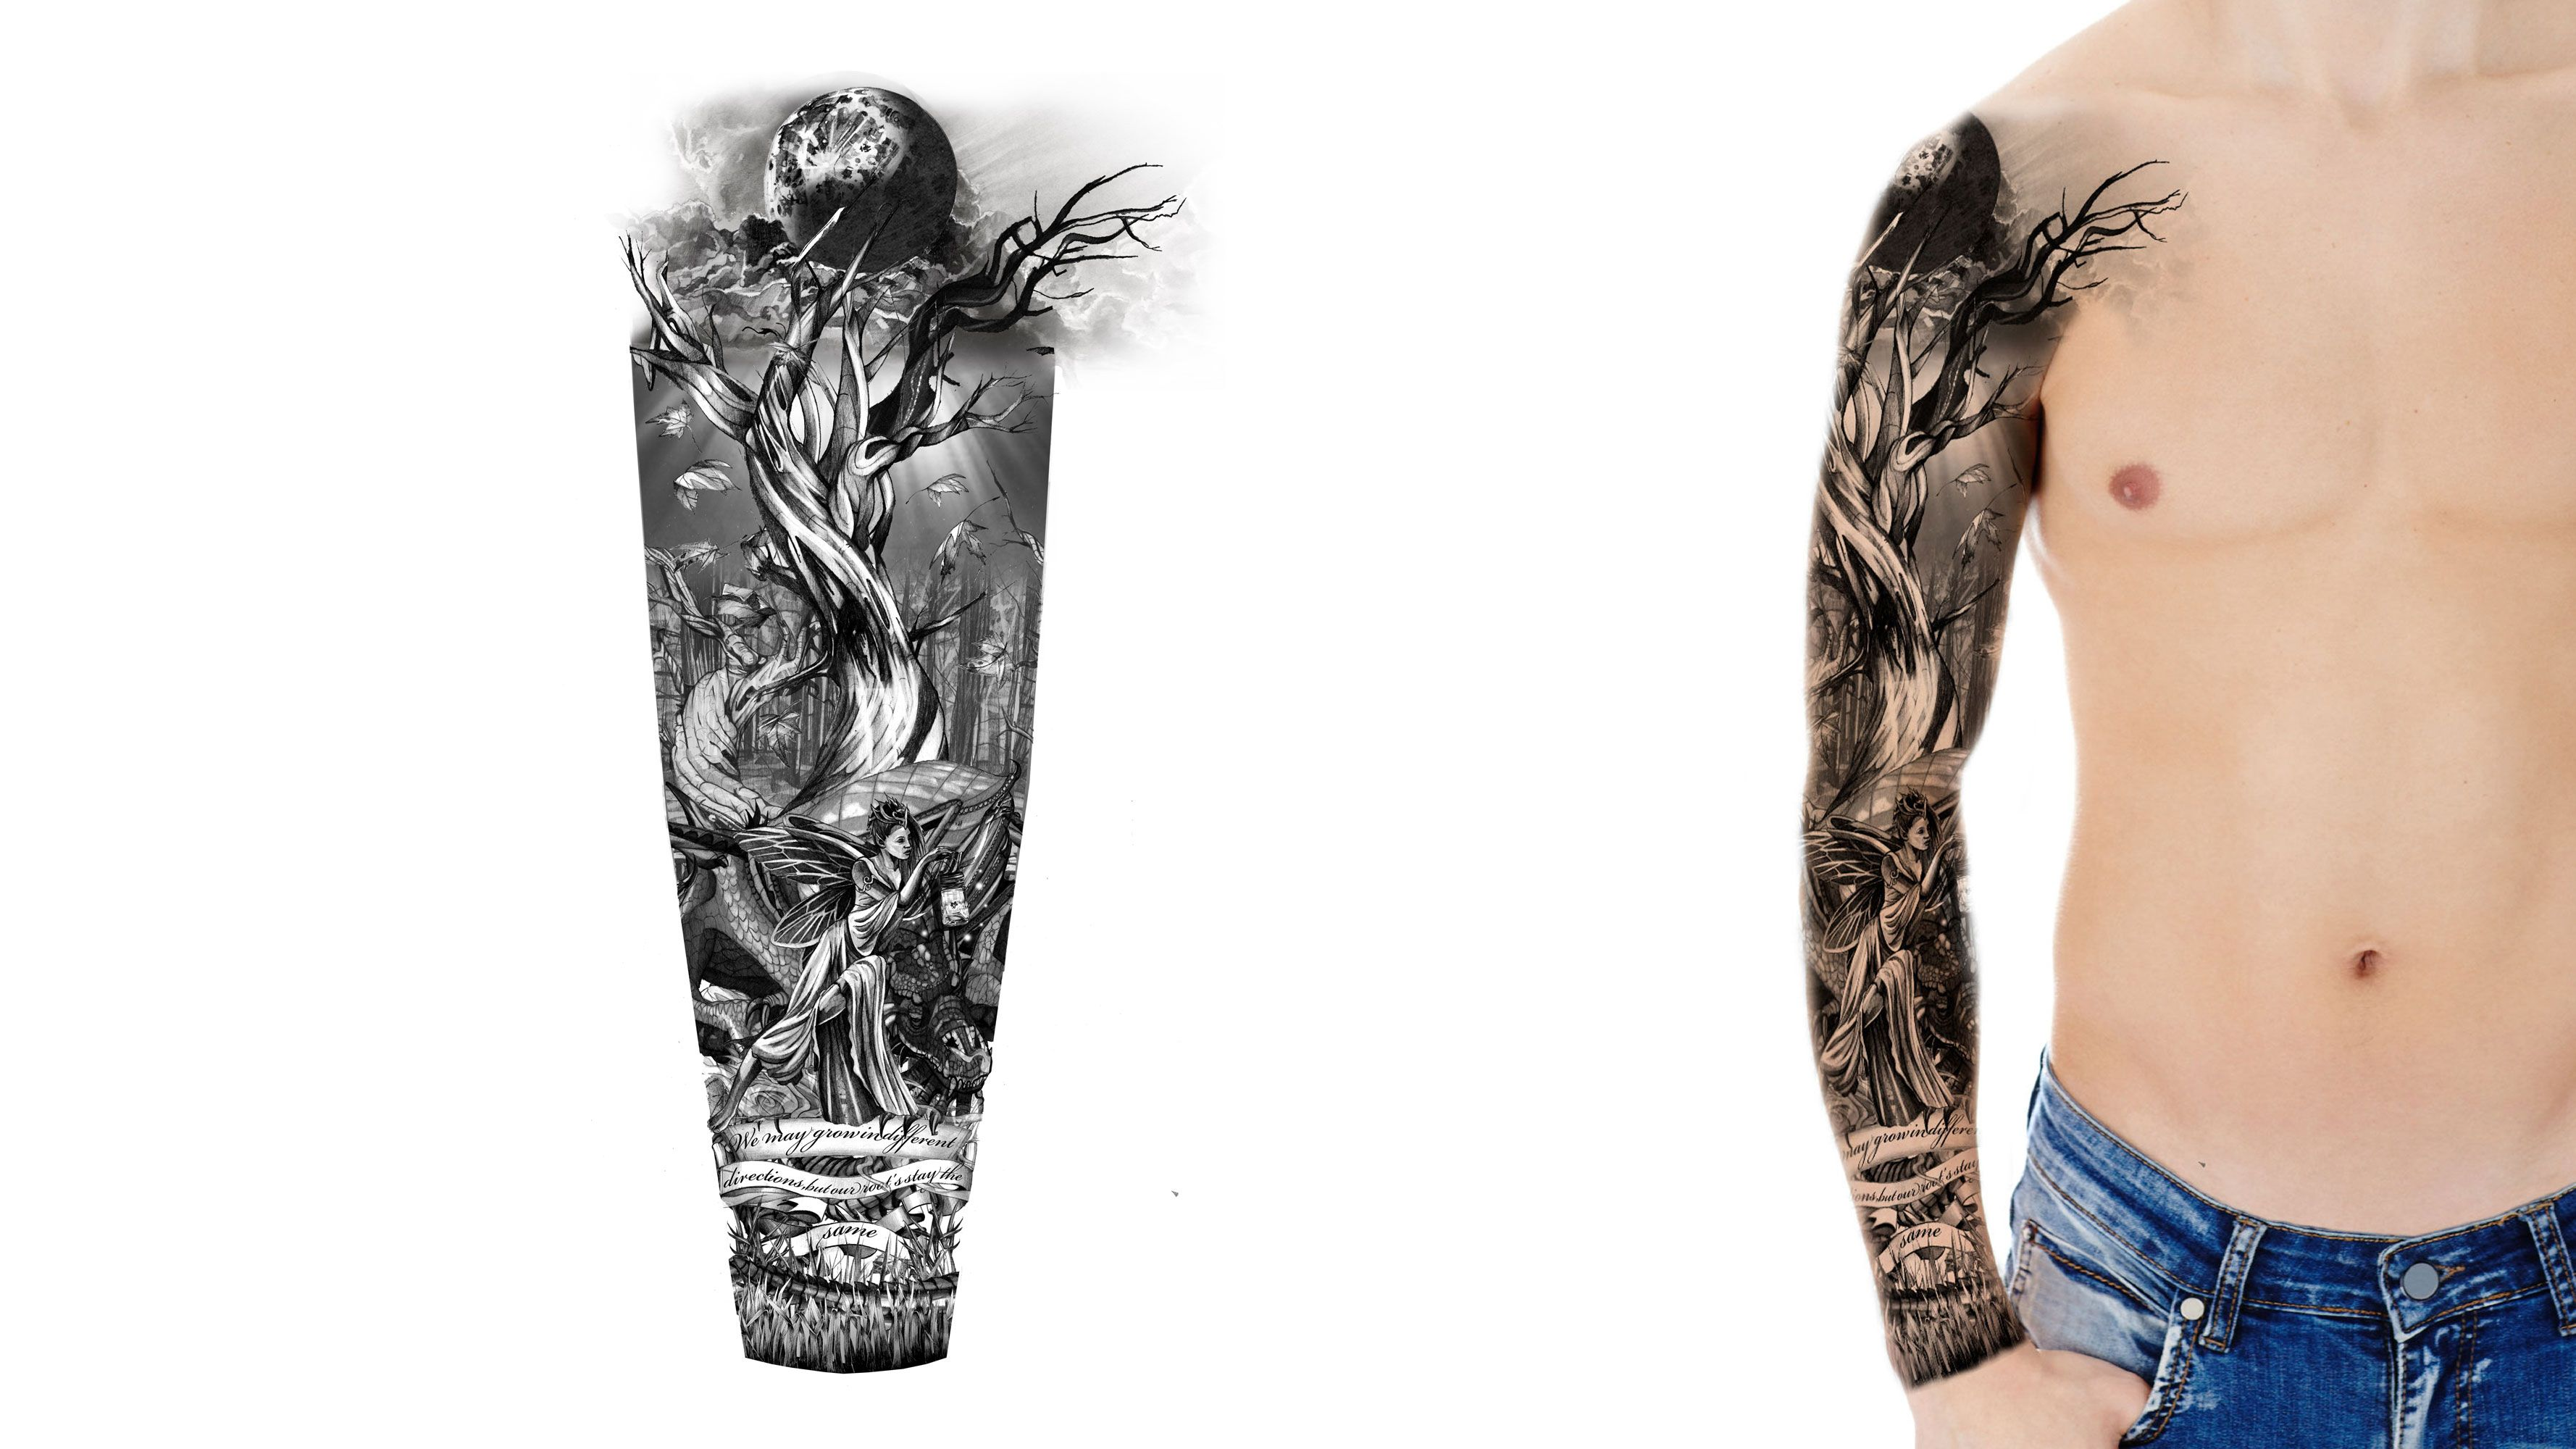 Tattoo Designs Gallery of Artwork and Videos Tattoo